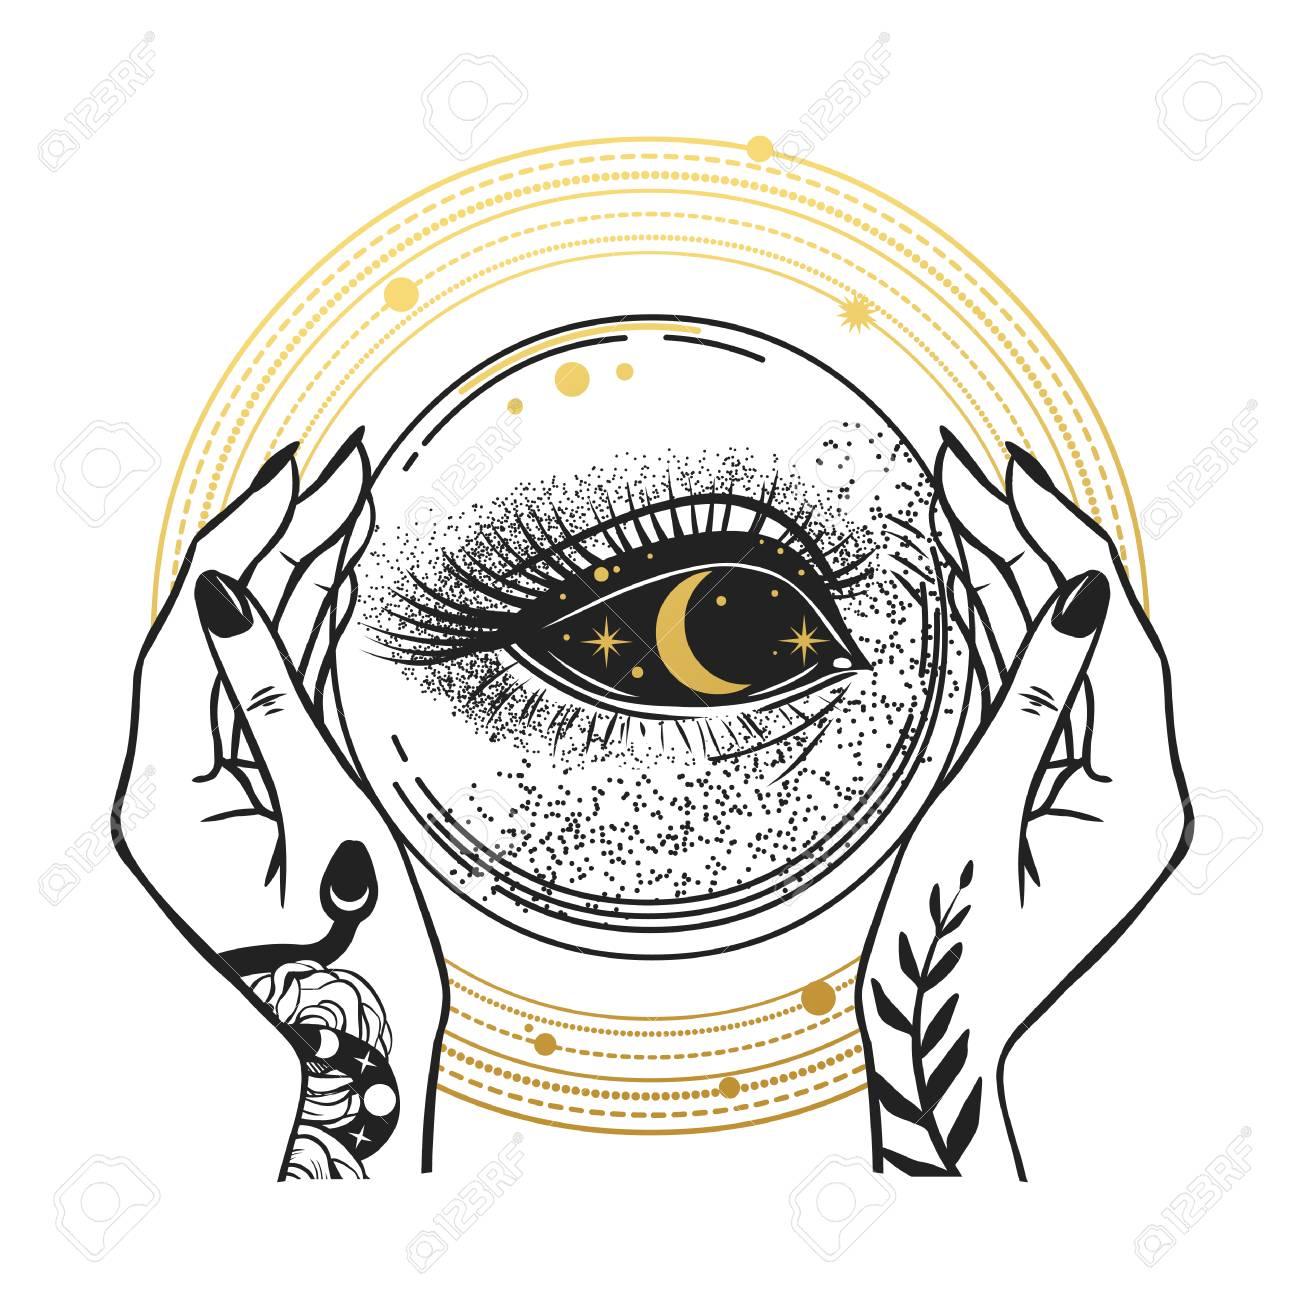 The Darkness inside of the crystal ball. T-shirt prints, temporary tattoos and other designs - 119485341